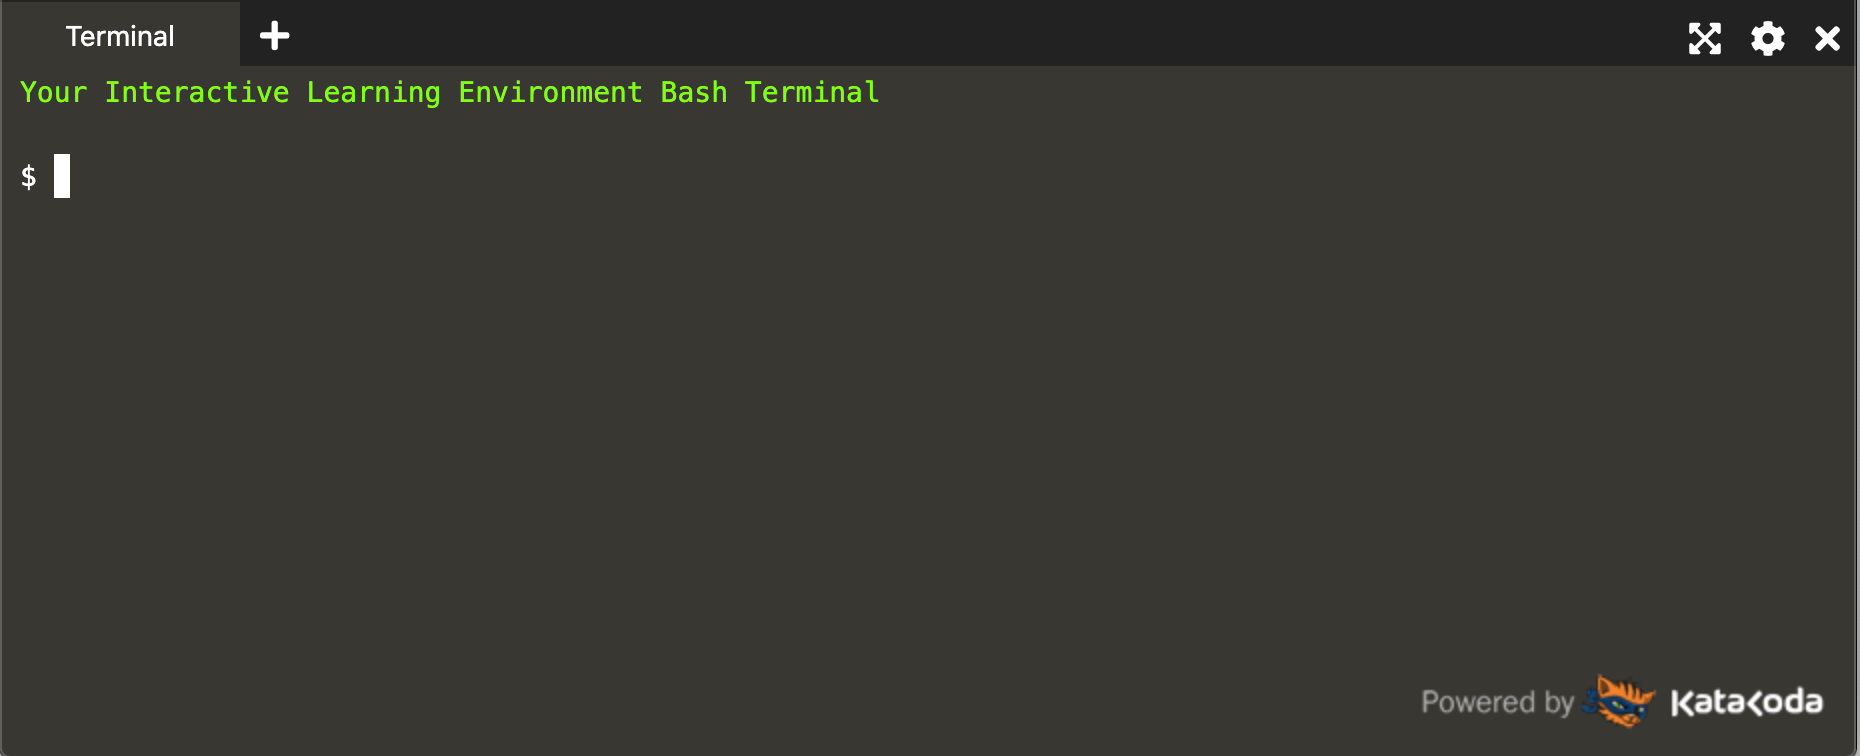 Screenshot of the Katacoda Terminal Environment